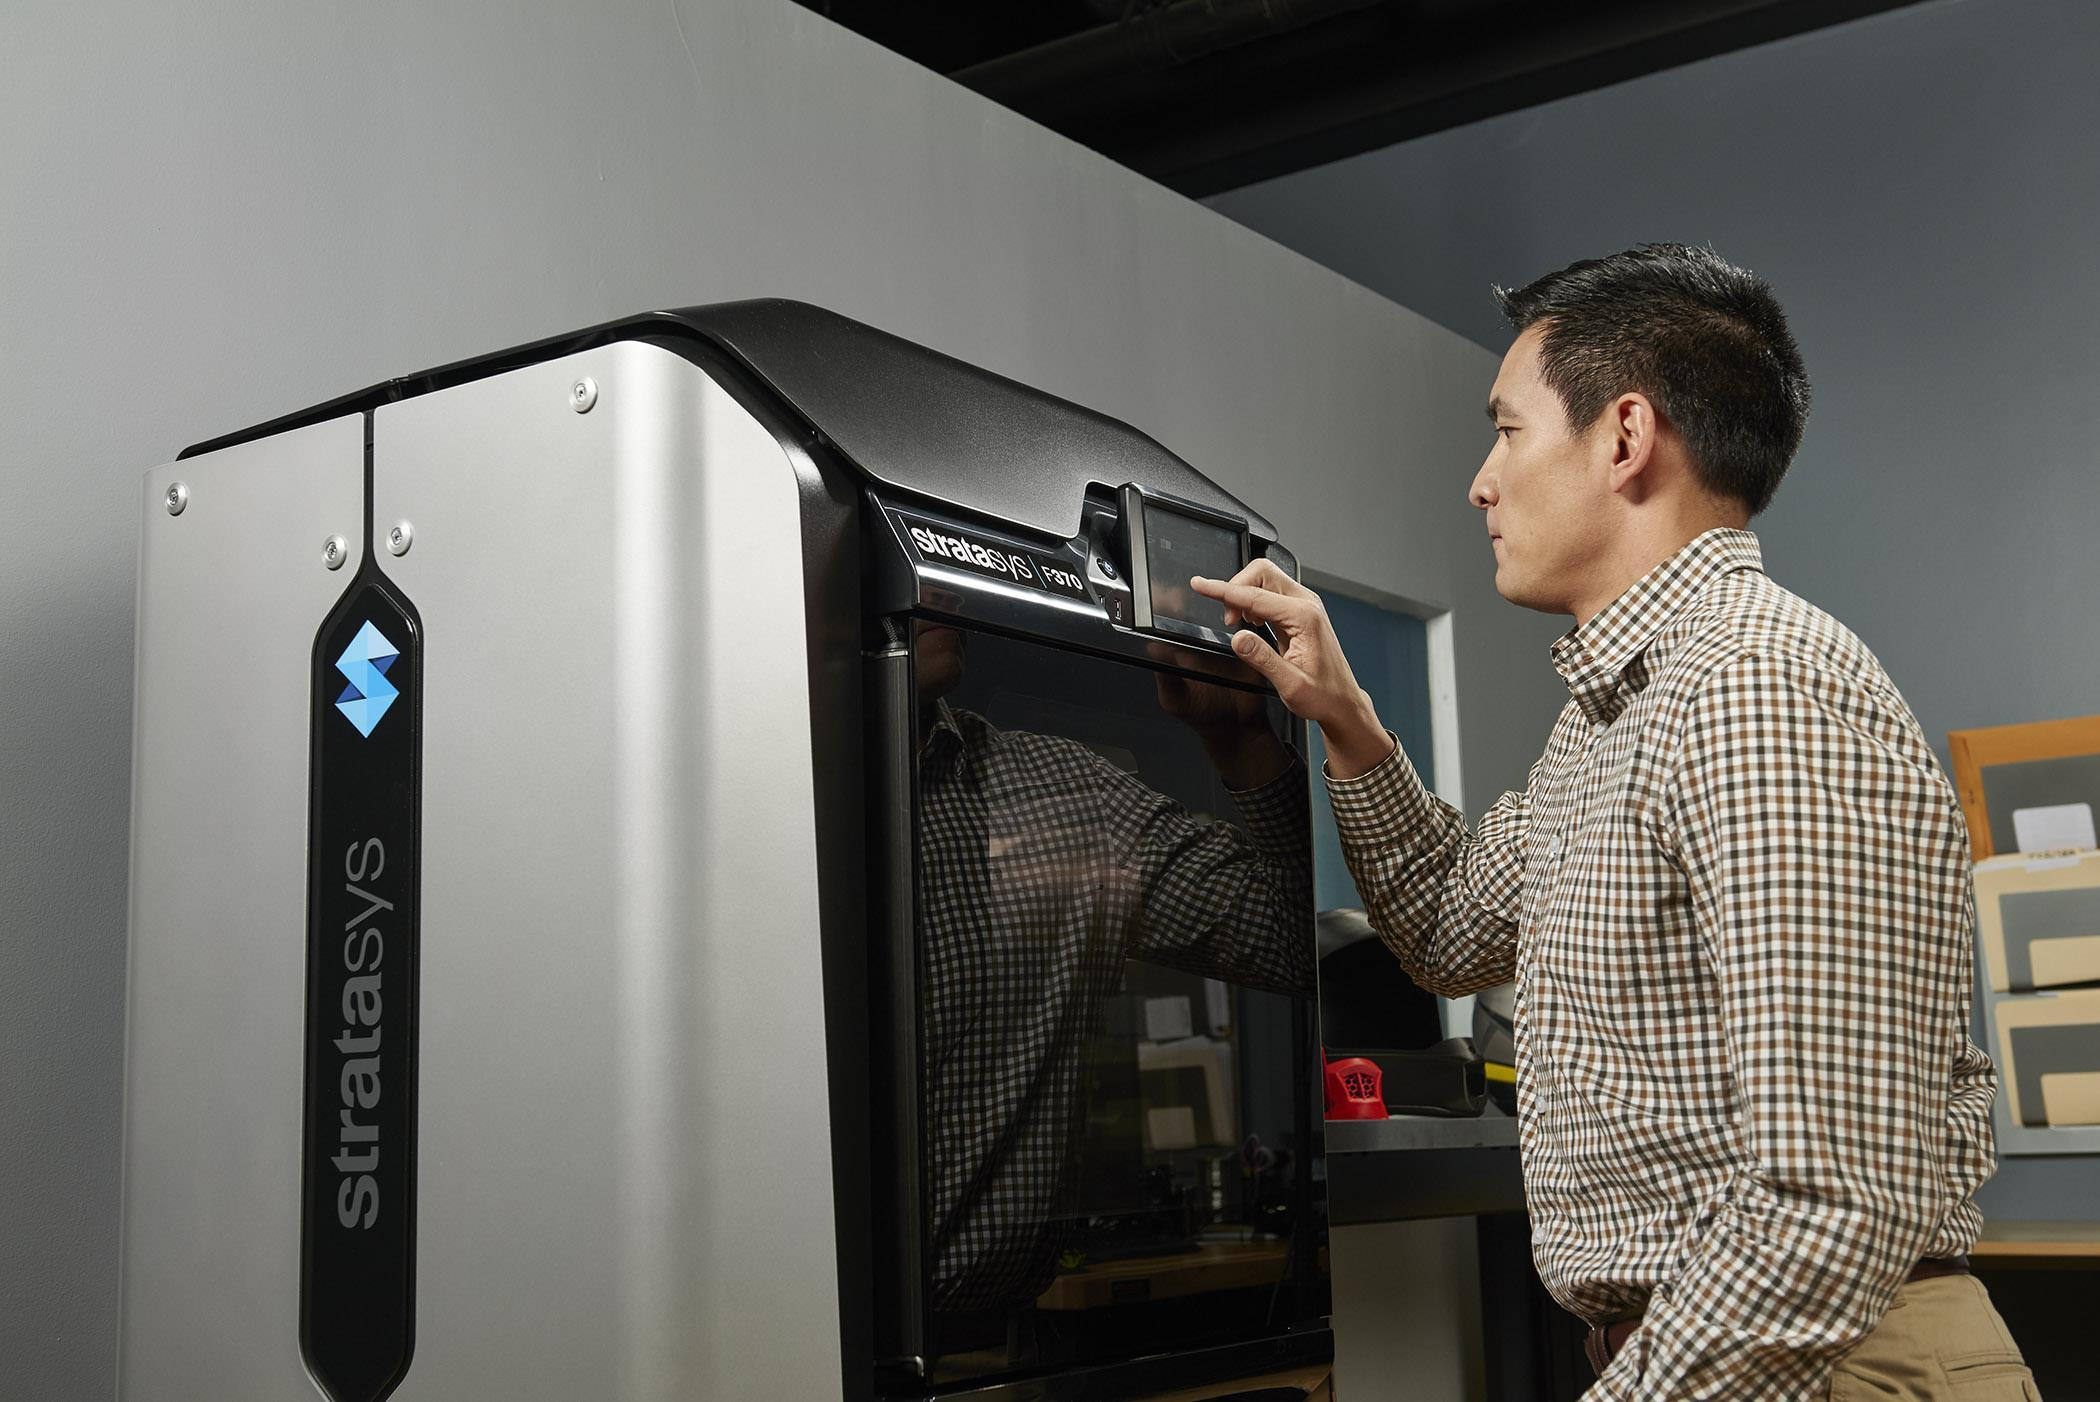 The Stratasys F123 Series for Rapid Prototyping solutions is designed for maximum productivity and ease of use, including a touch screen user interface. (Photo: Business Wire)